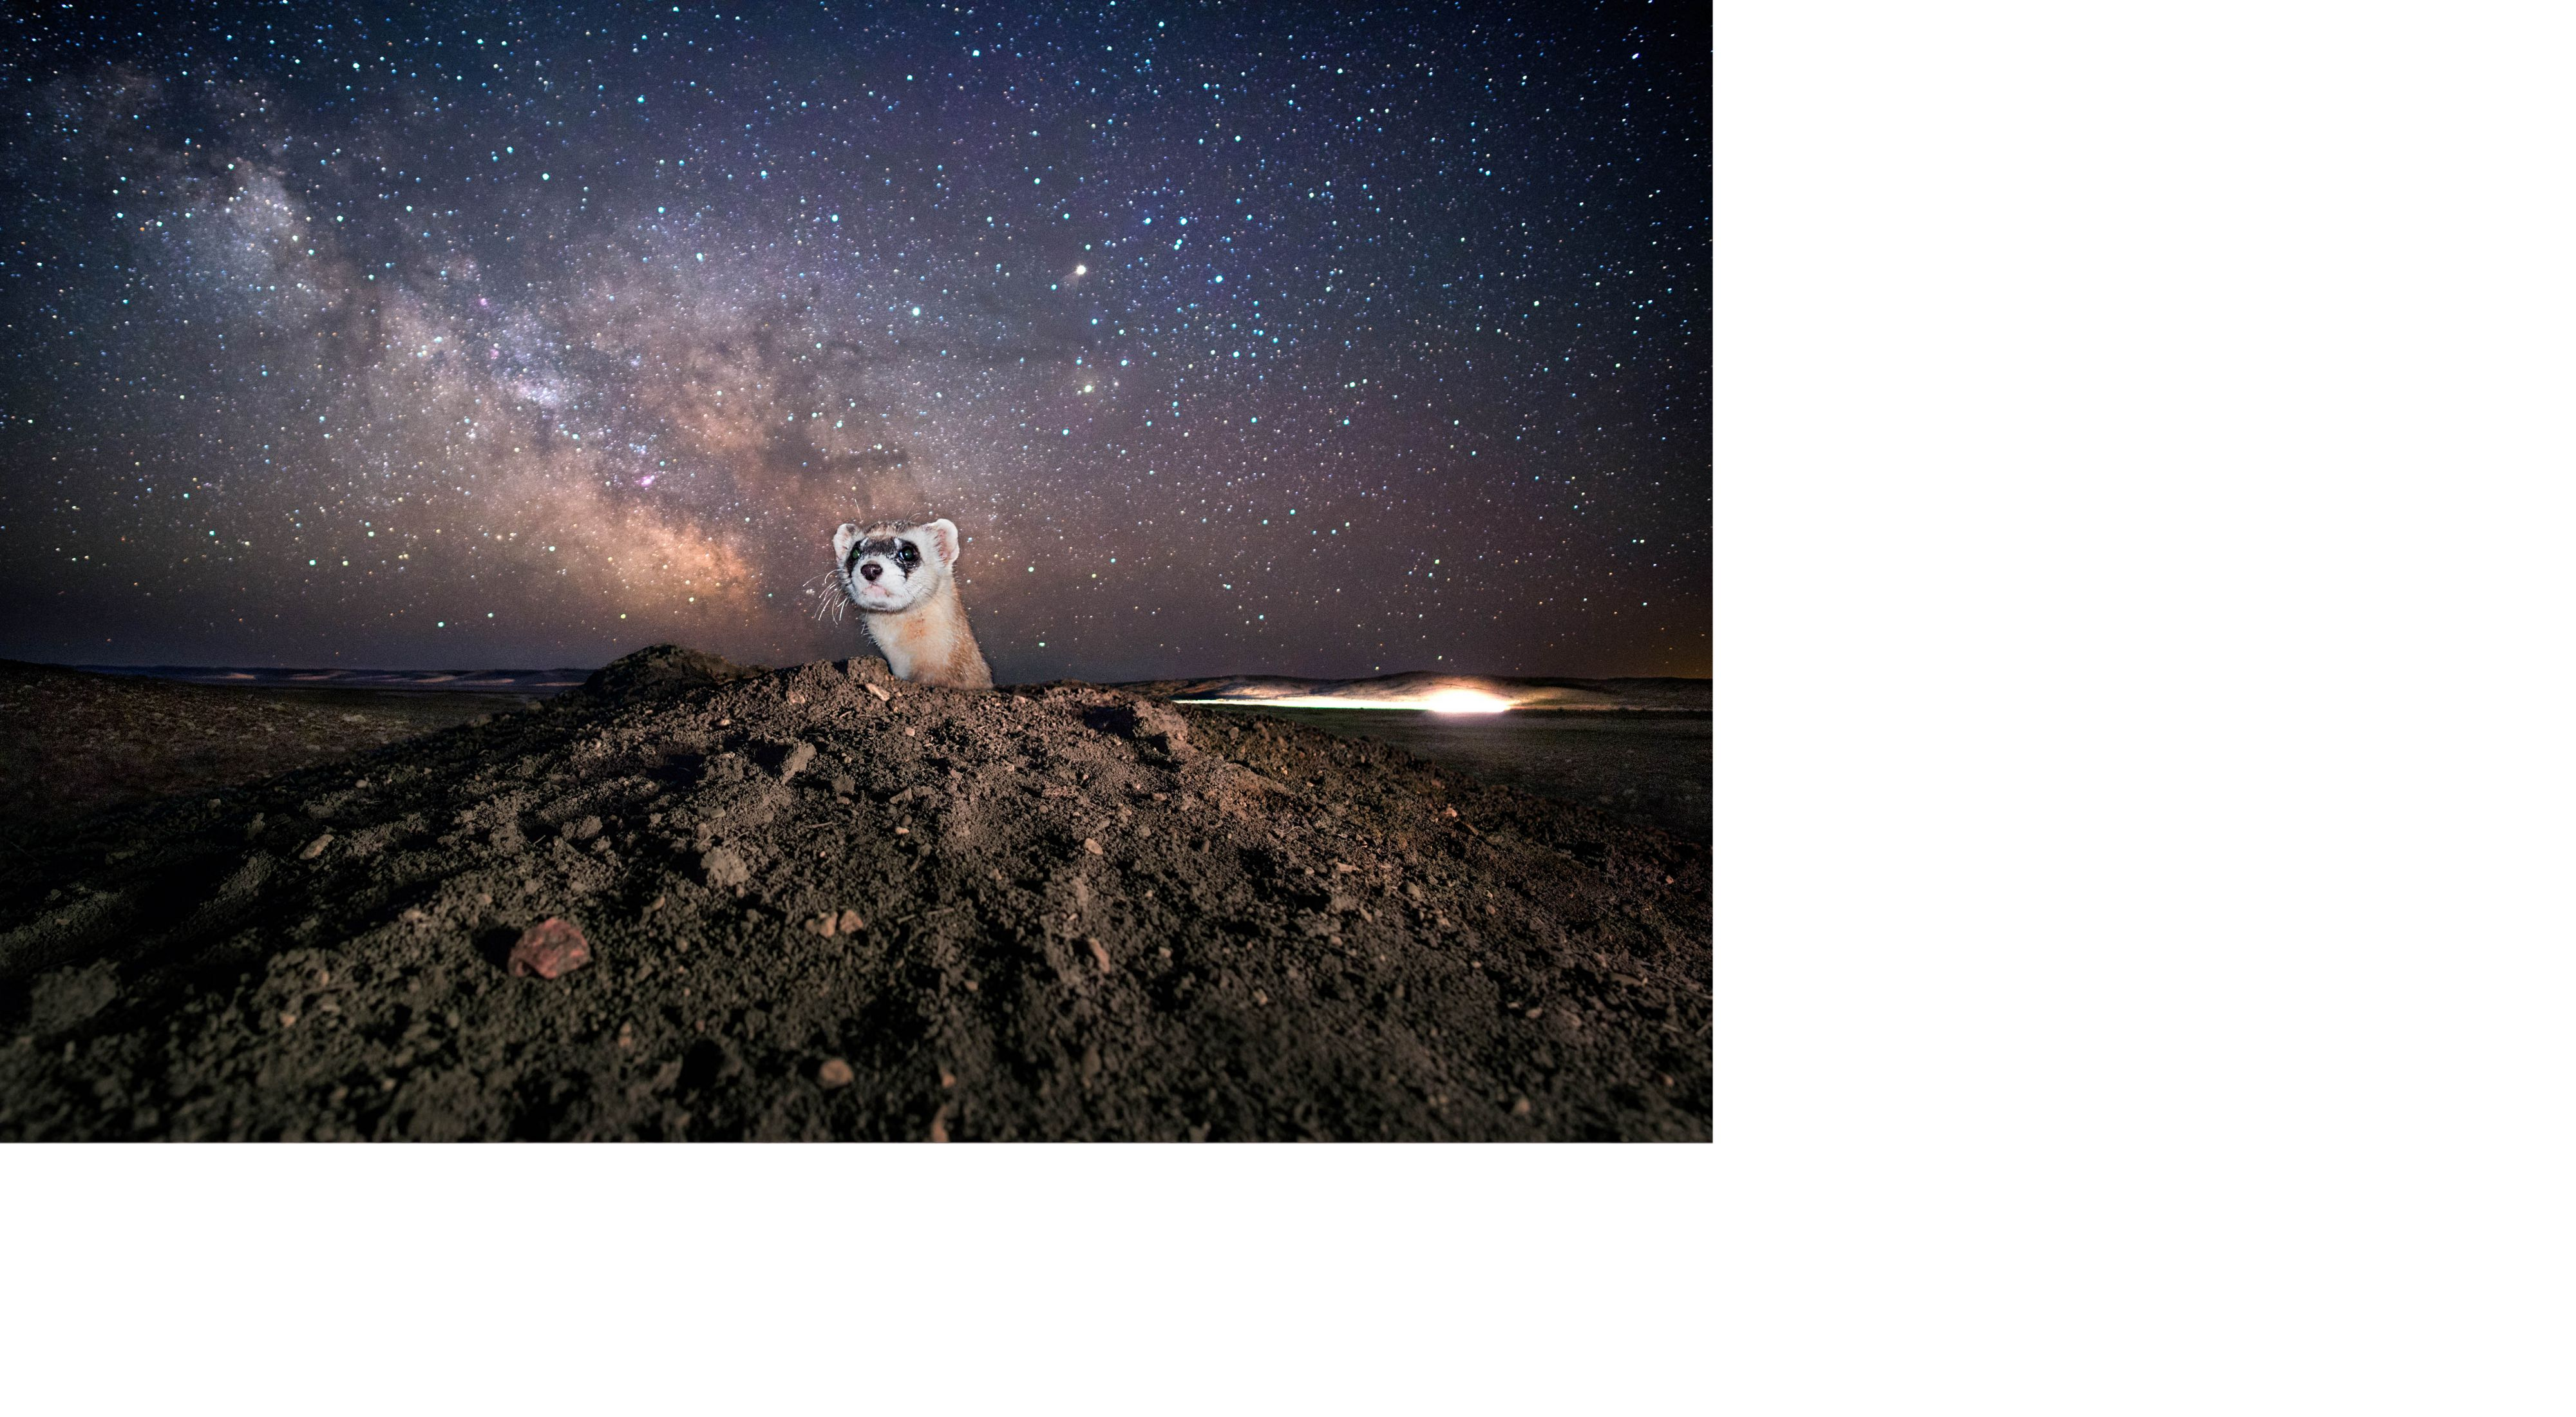 A black-footed ferret peeks out of the ground against a starry sky